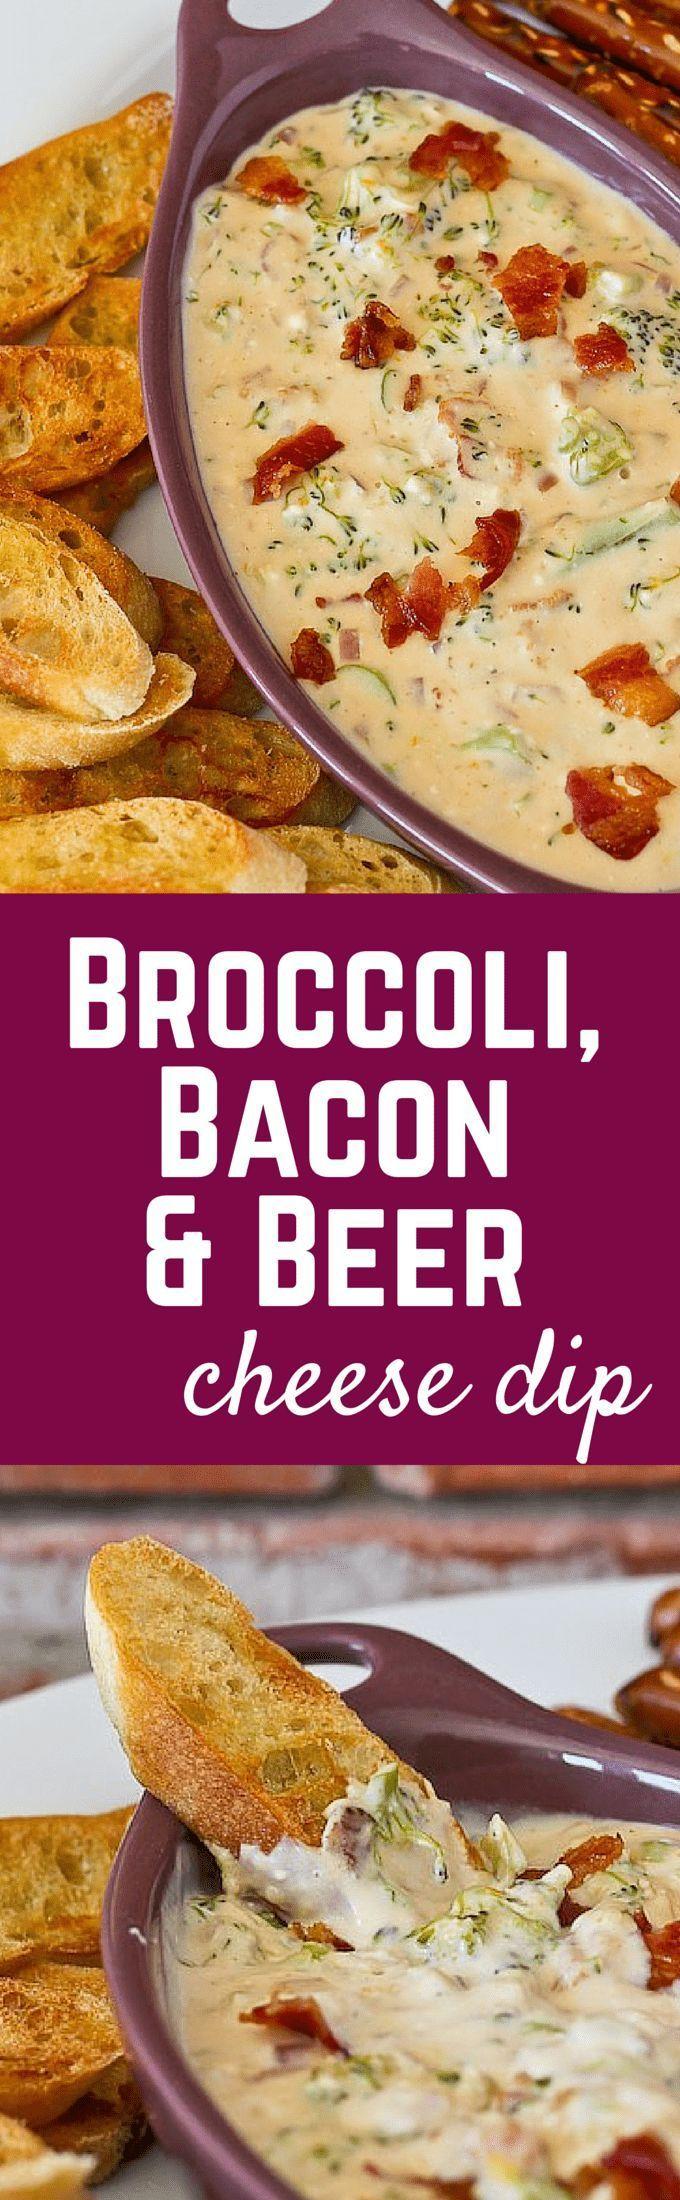 This Broccoli, Bacon, and Beer Cheese Dip will be the hit of any party! Get the easy recipe on RachelCooks.com!